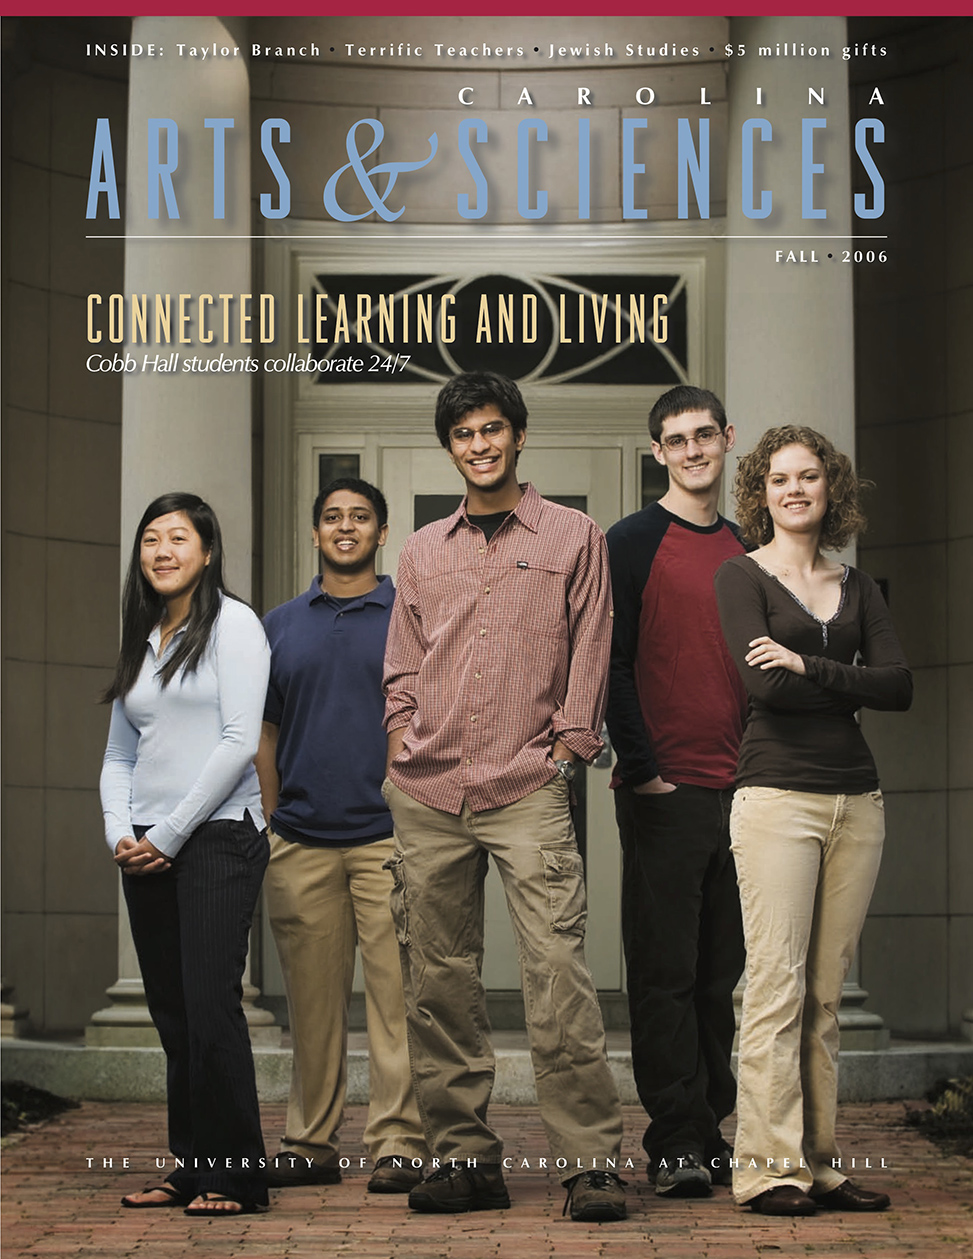 Fall 2006 Magazine Cover